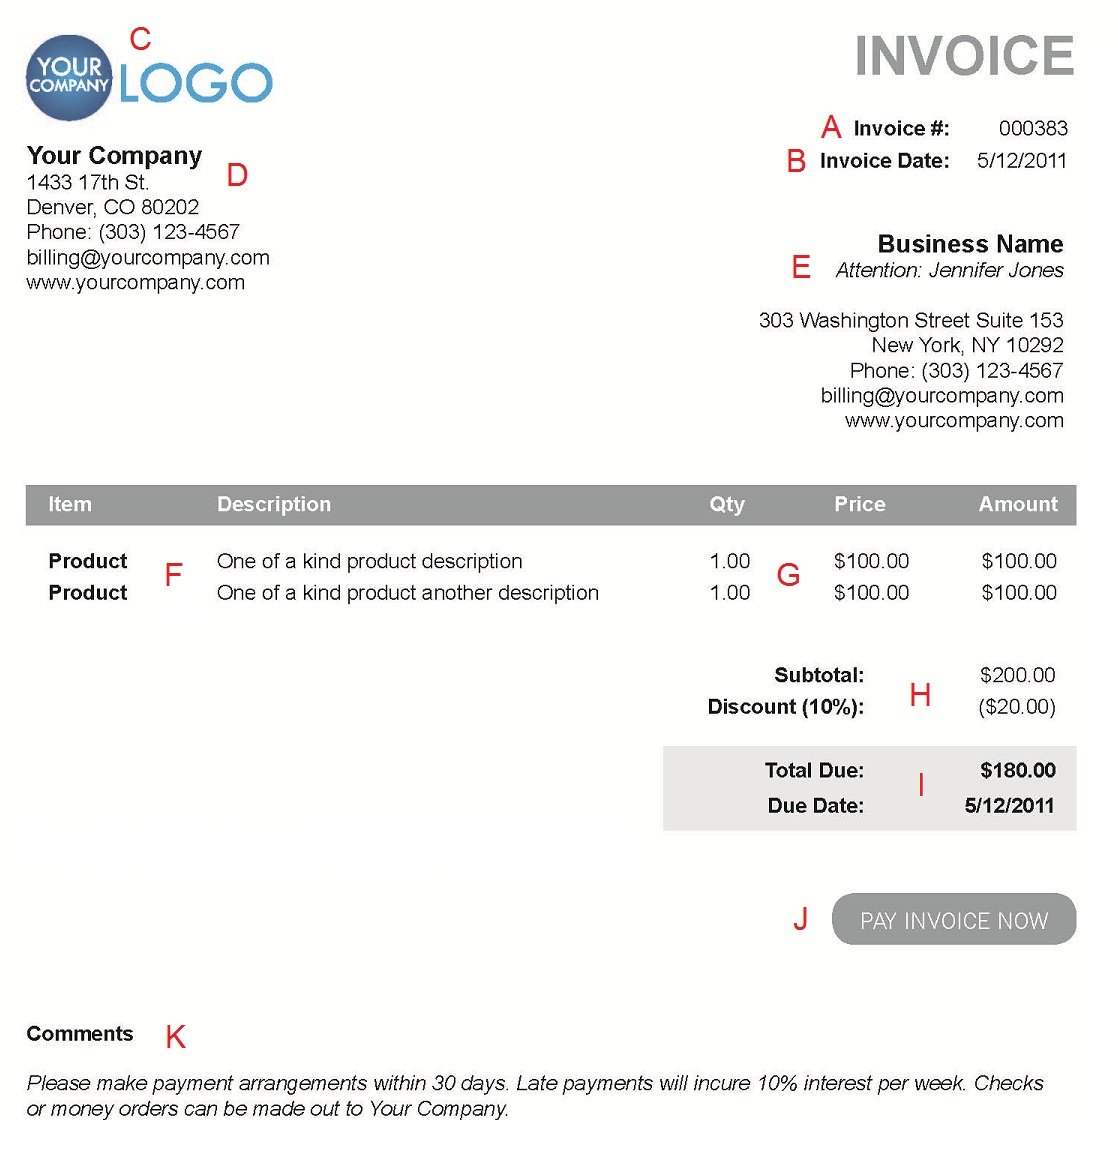 Ediblewildsus  Winning The  Different Sections Of An Electronic Payment Invoice With Engaging A  With Beauteous Woocommerce Invoice Also Download Invoice Template In Addition Photography Invoice Template And What Is A Paypal Invoice As Well As Joist Invoice Additionally Blank Invoice To Print From Paysimplecom With Ediblewildsus  Engaging The  Different Sections Of An Electronic Payment Invoice With Beauteous A  And Winning Woocommerce Invoice Also Download Invoice Template In Addition Photography Invoice Template From Paysimplecom